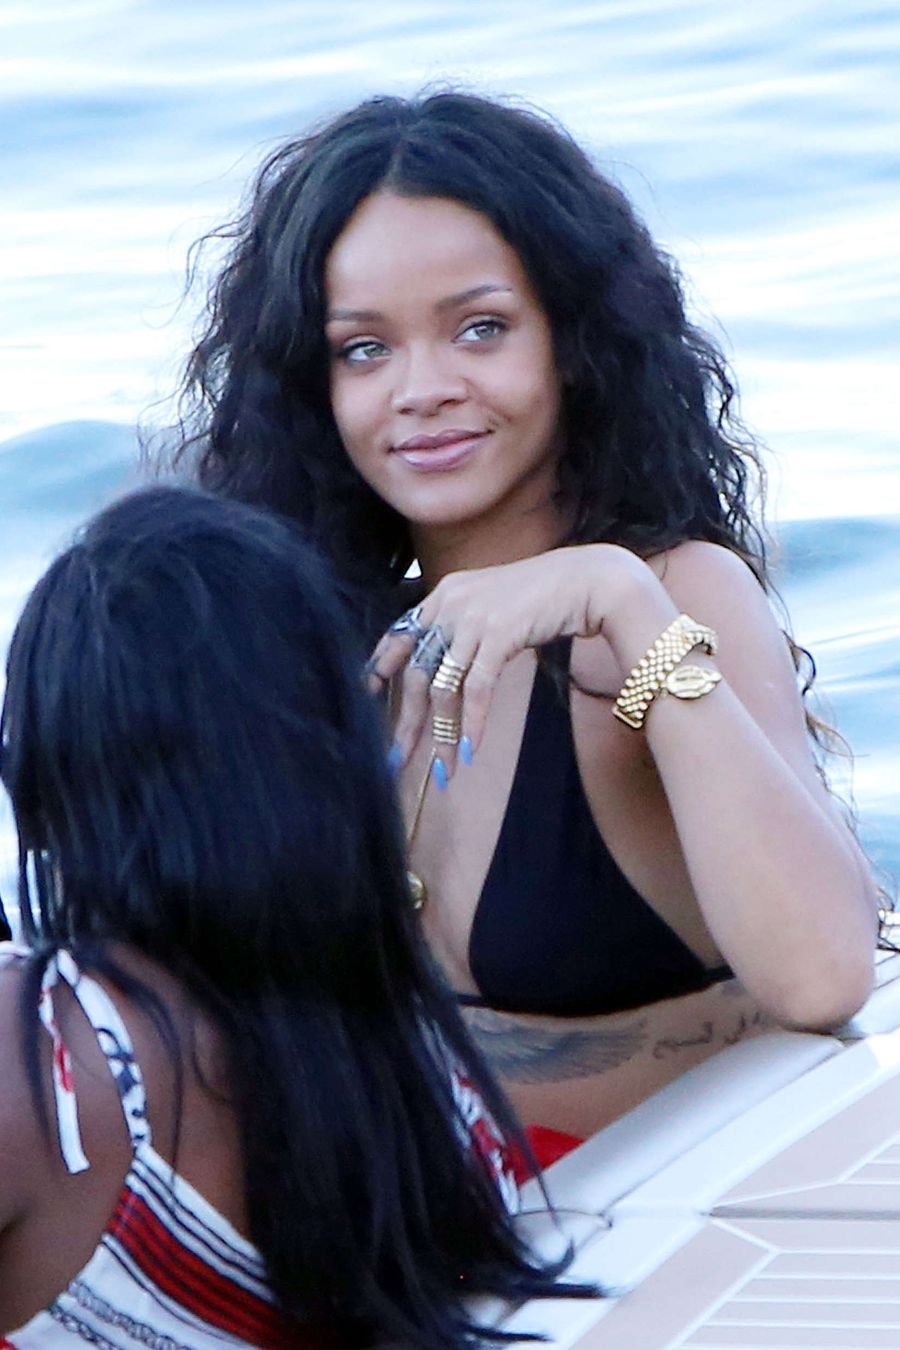 Rihanna In bikini vacationing in Sicily, Italy